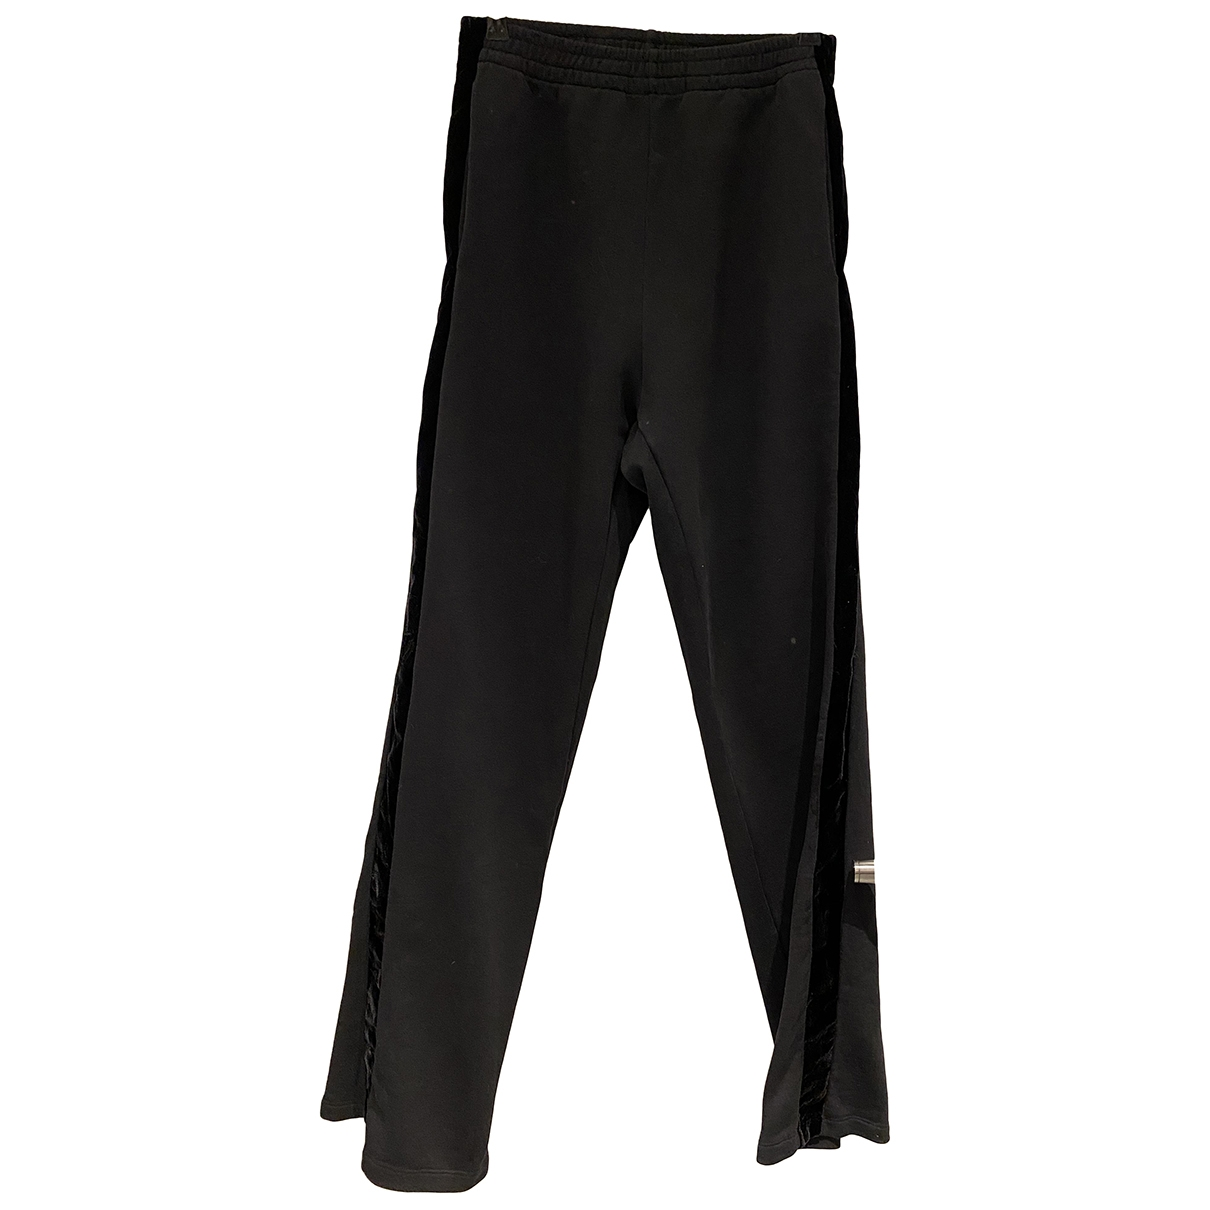 Givenchy \N Black Cotton Trousers for Women 38 FR